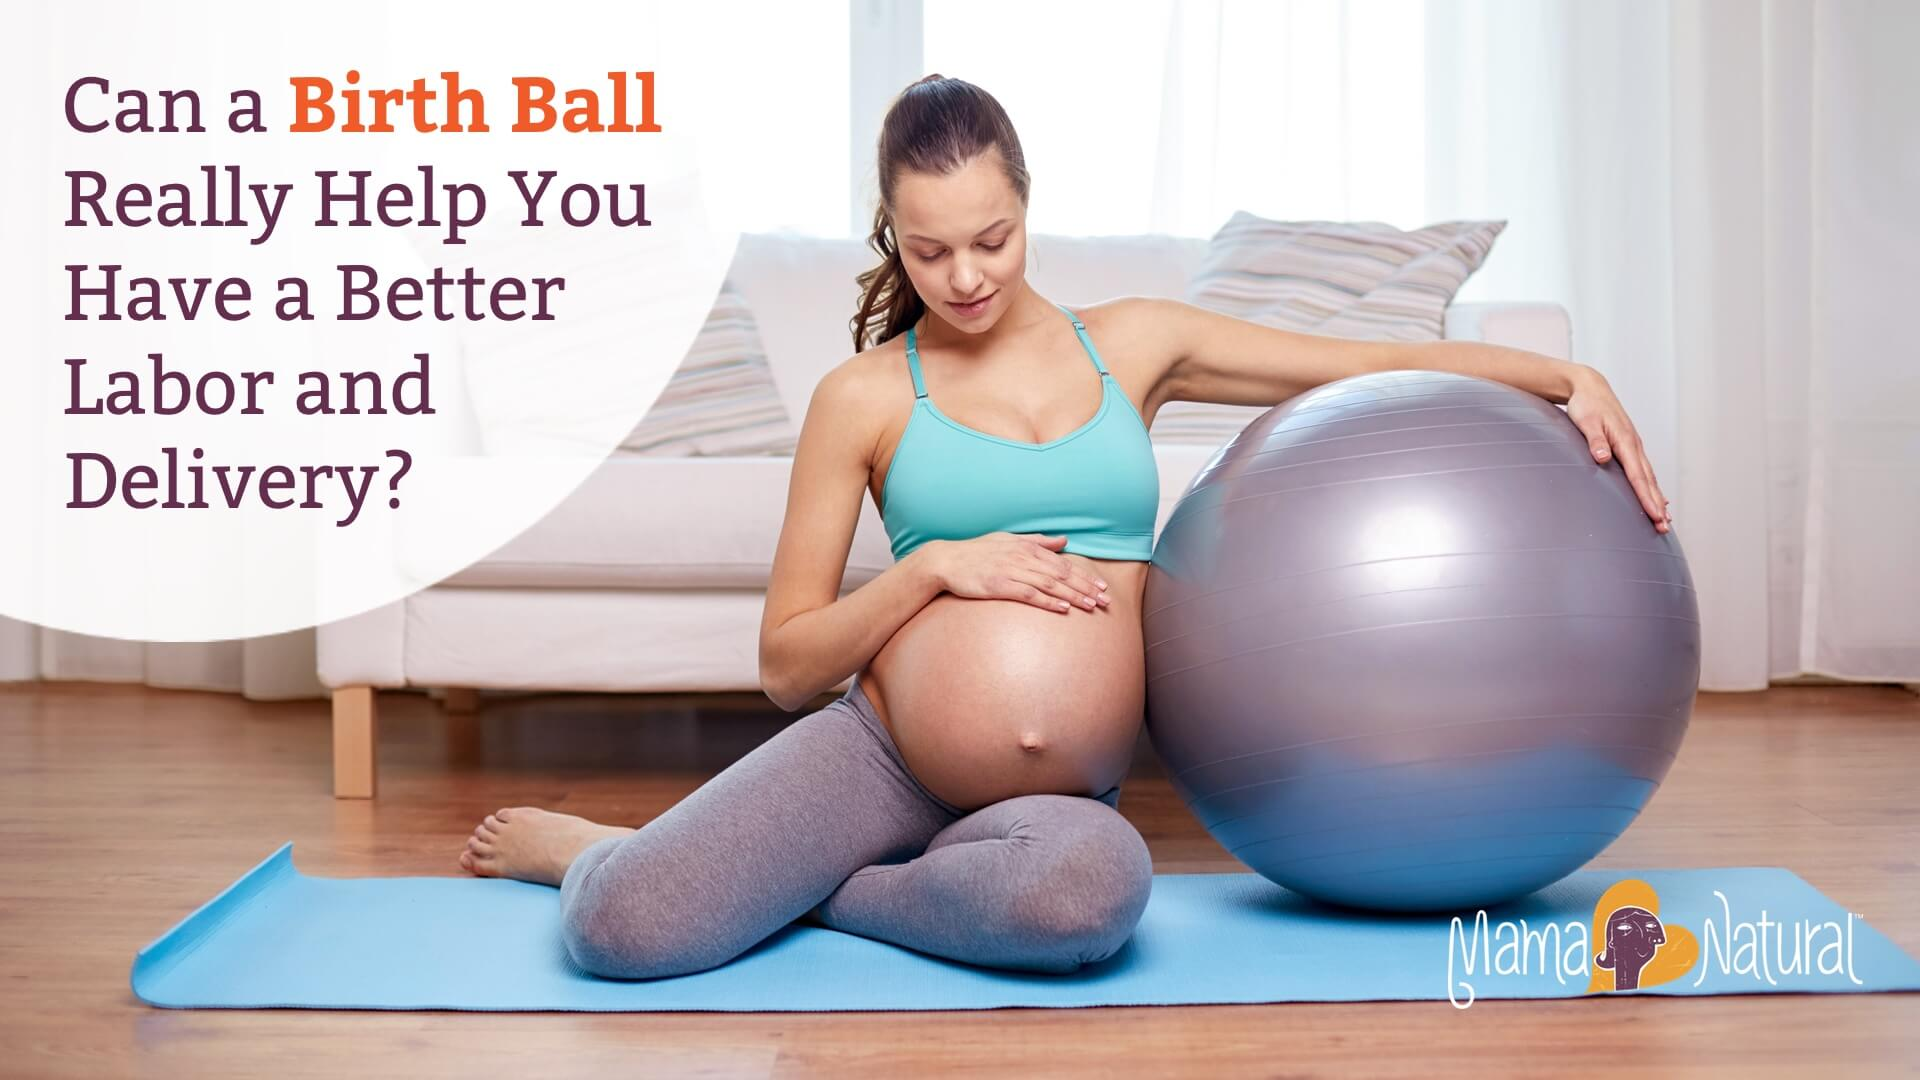 Can a Birth Ball Really Help You Have a Better Labor & Delivery